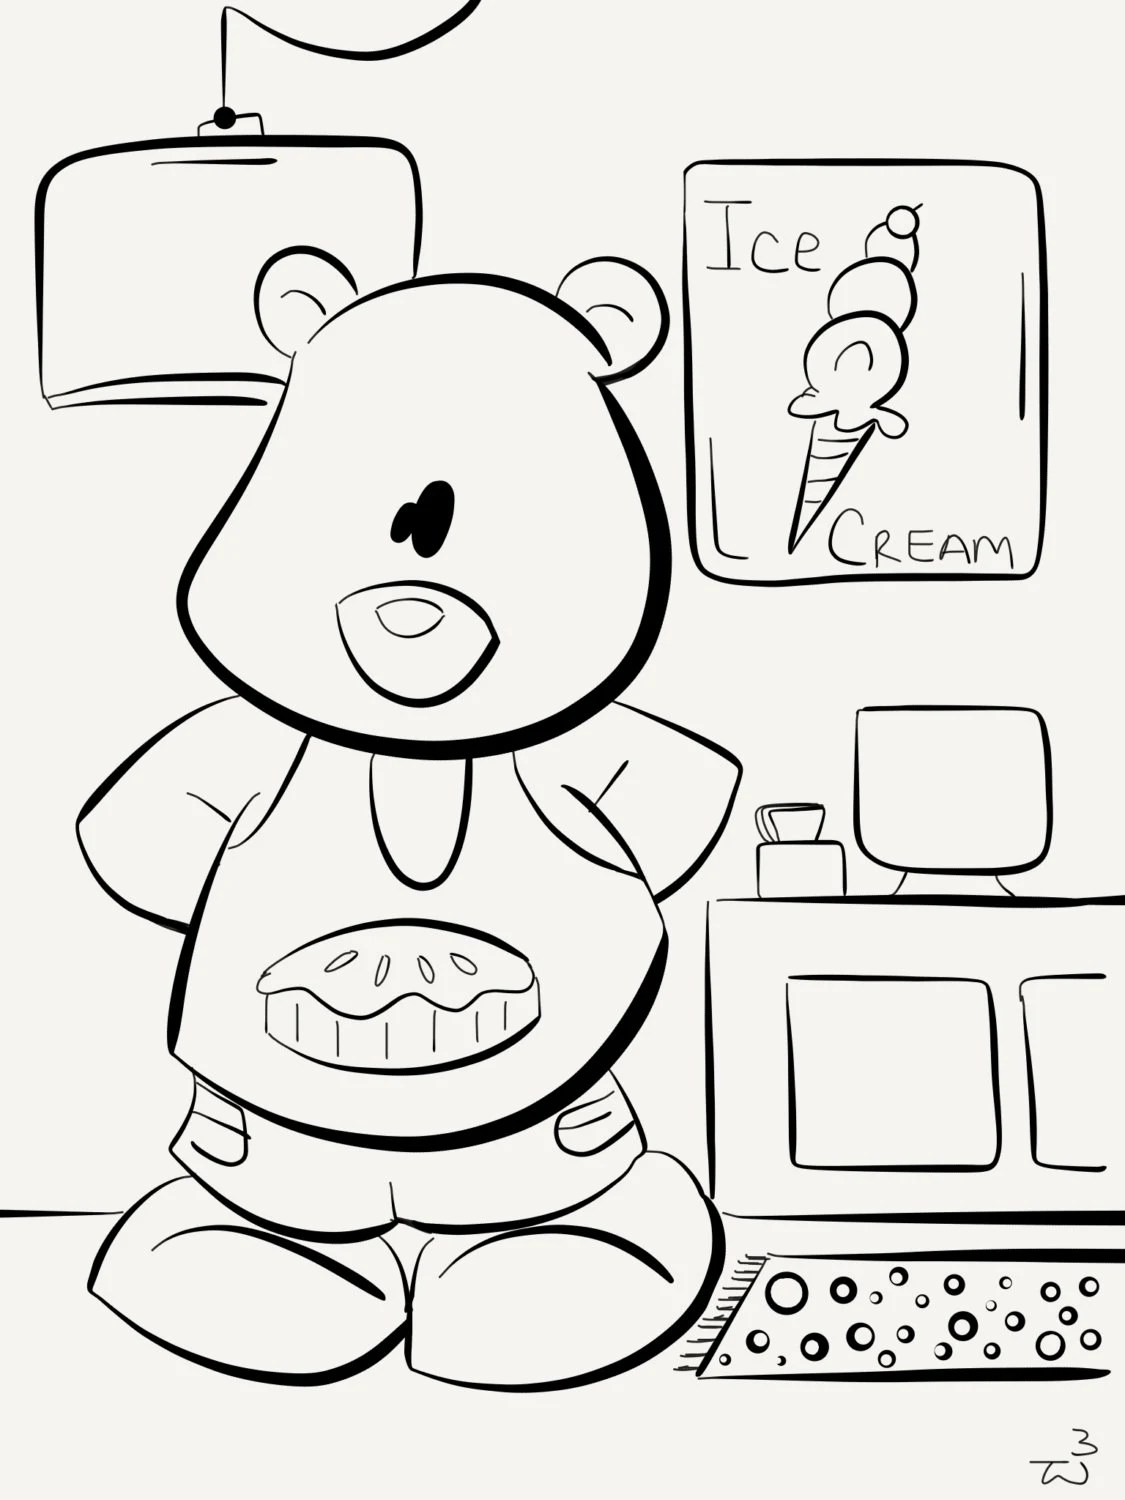 Ice Cream Shop Bear coloring book instant download